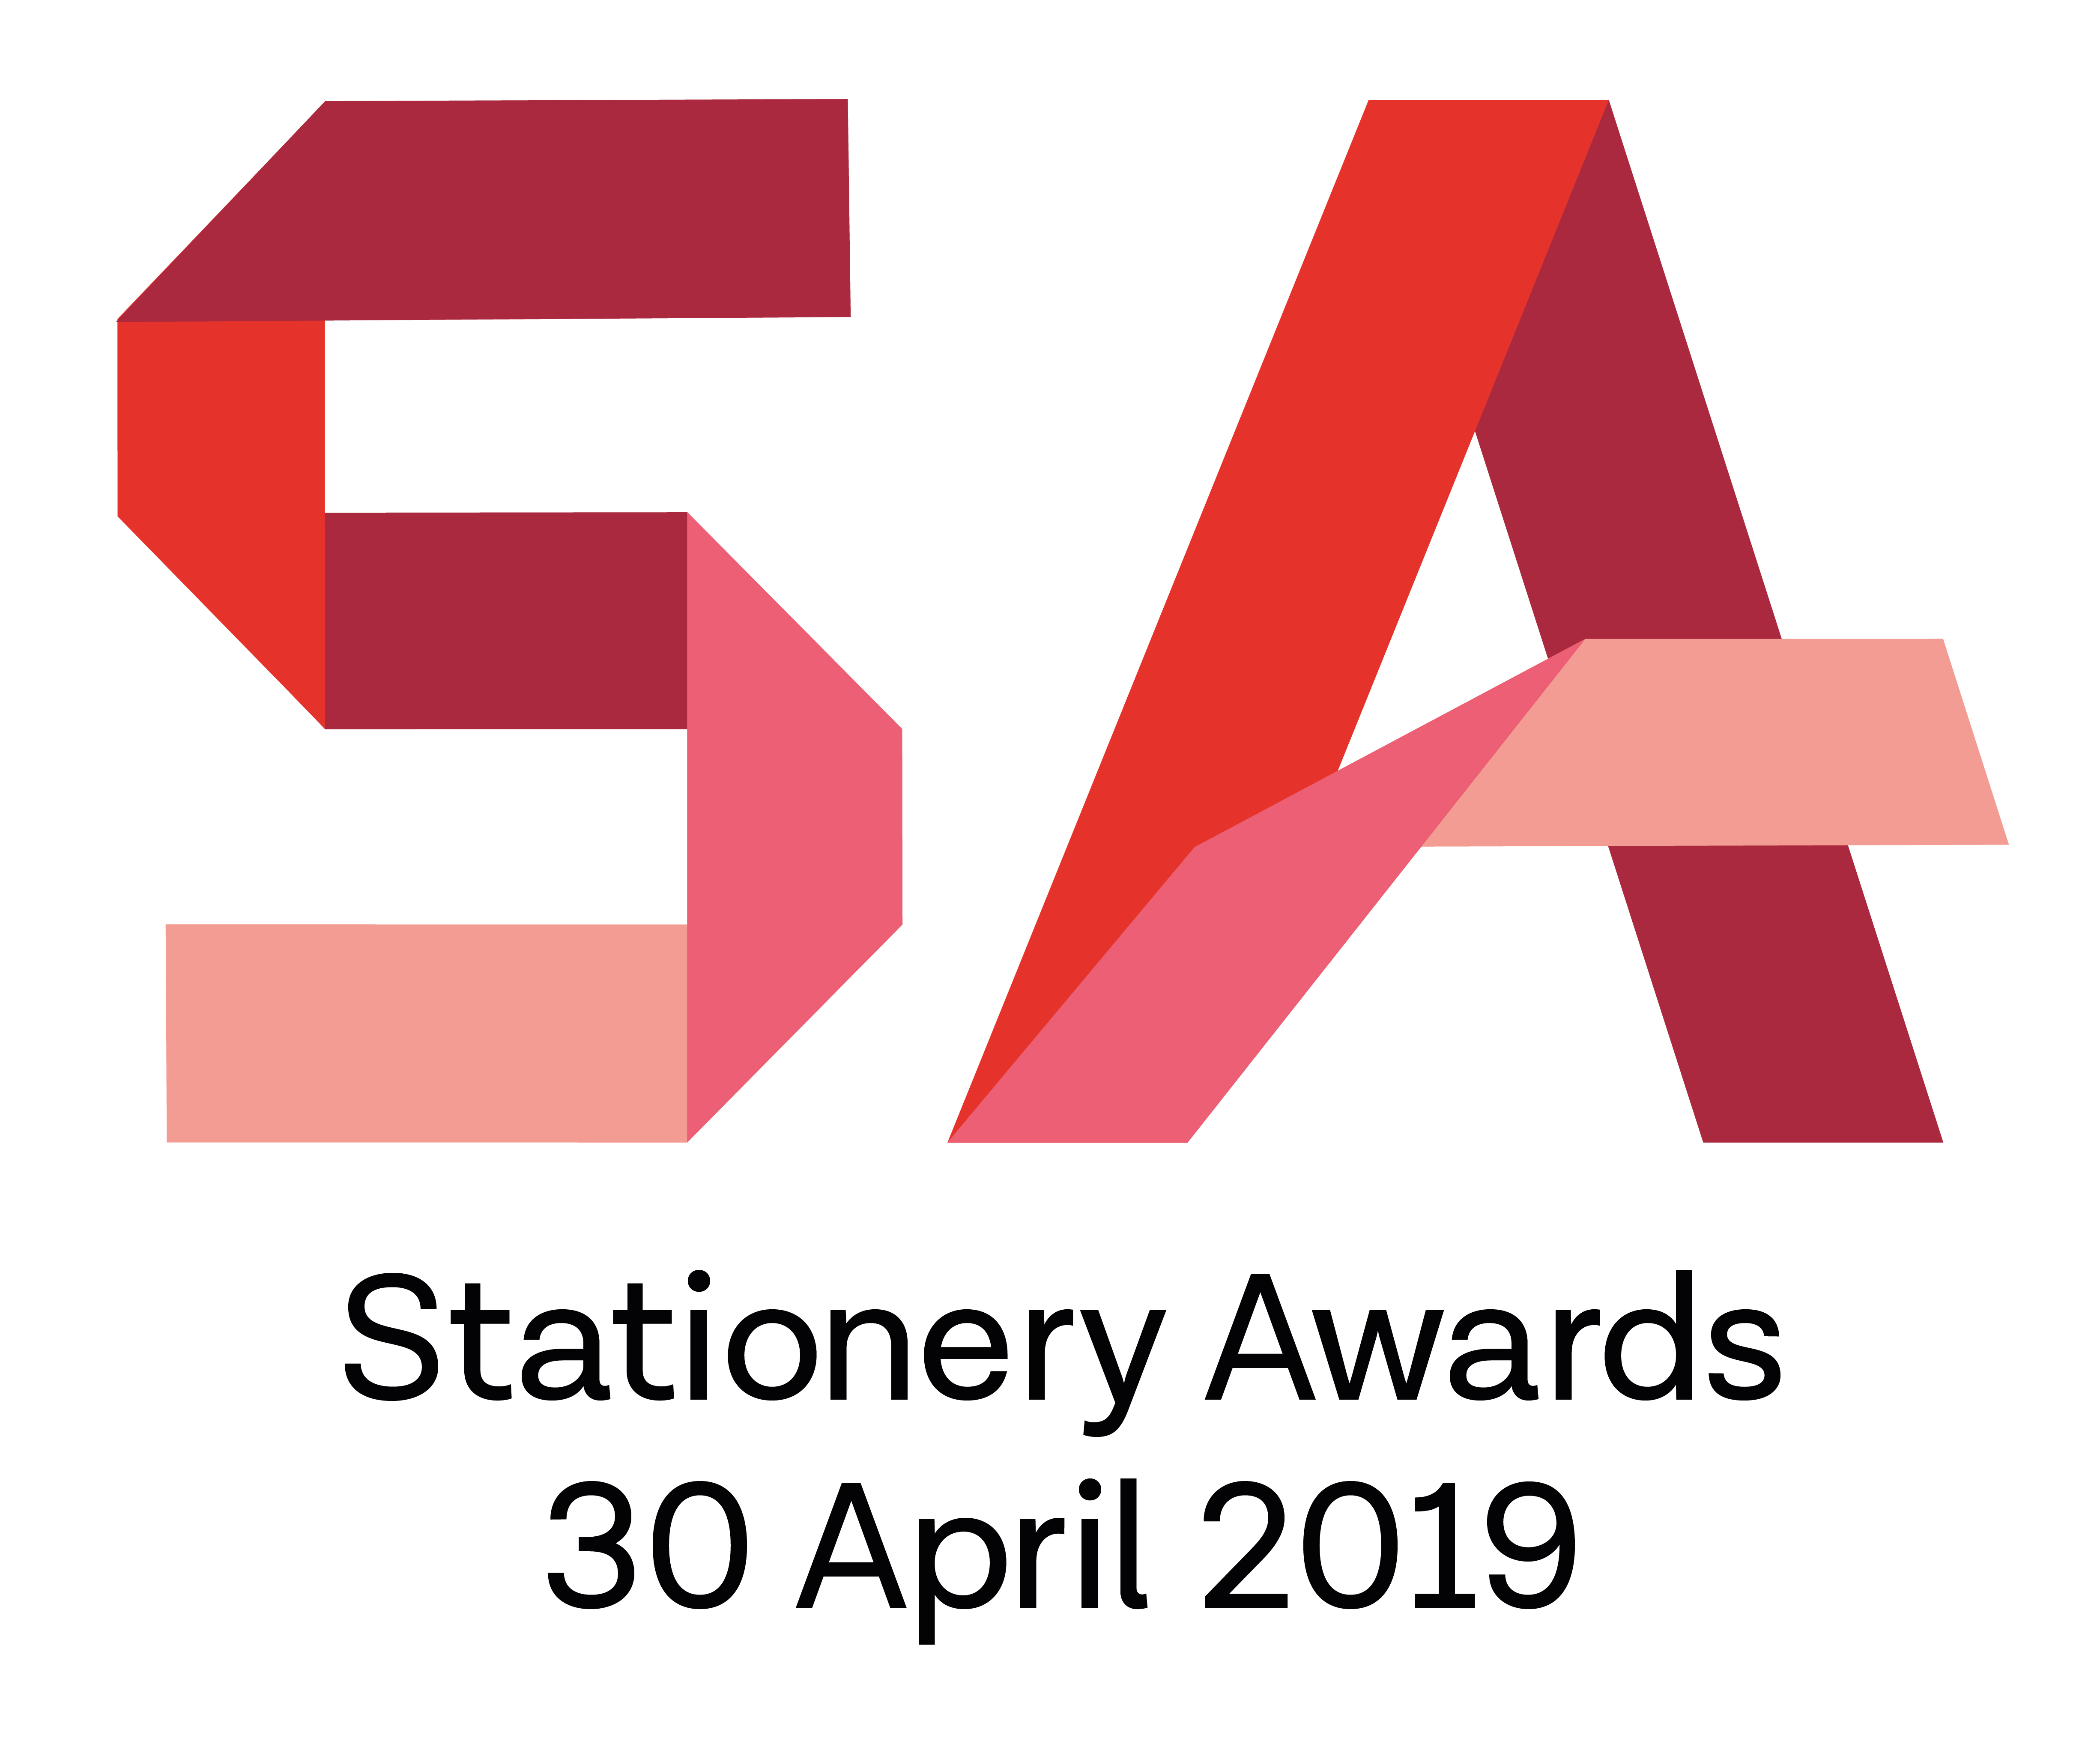 STATIONERY AWARDS EXPAND TO WELCOME RETAILER & DESIGNER ENTRIES